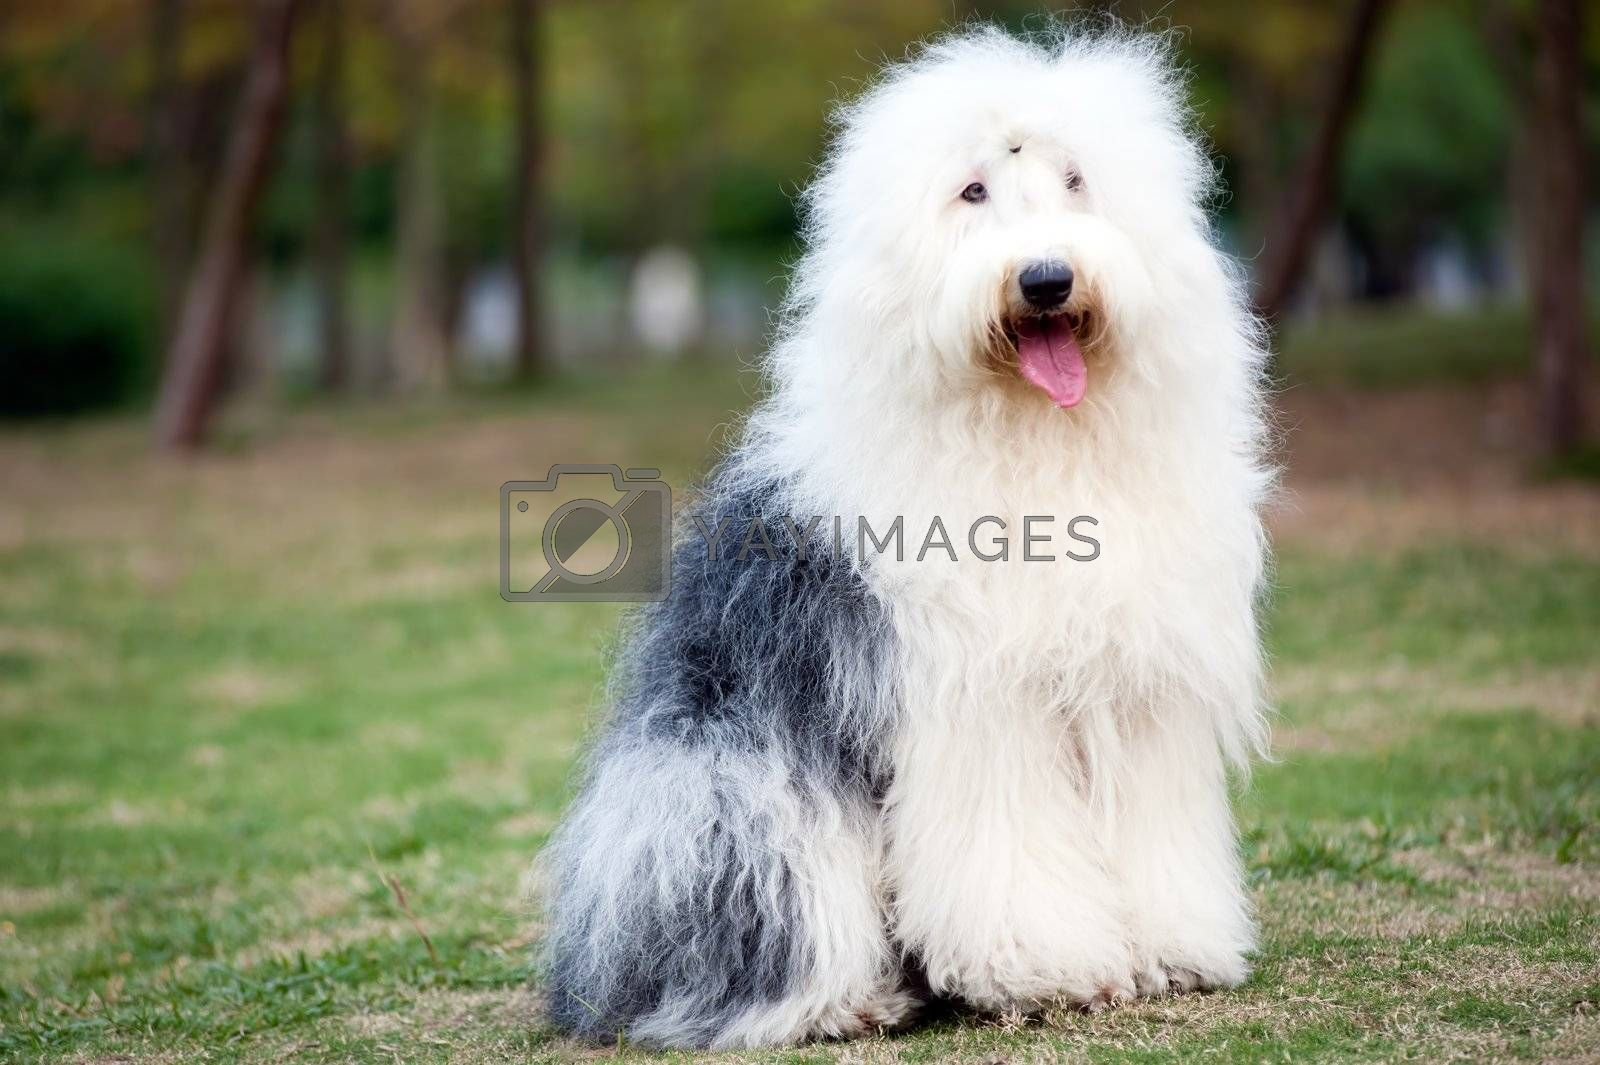 An old English sheepdog standing on the lawn